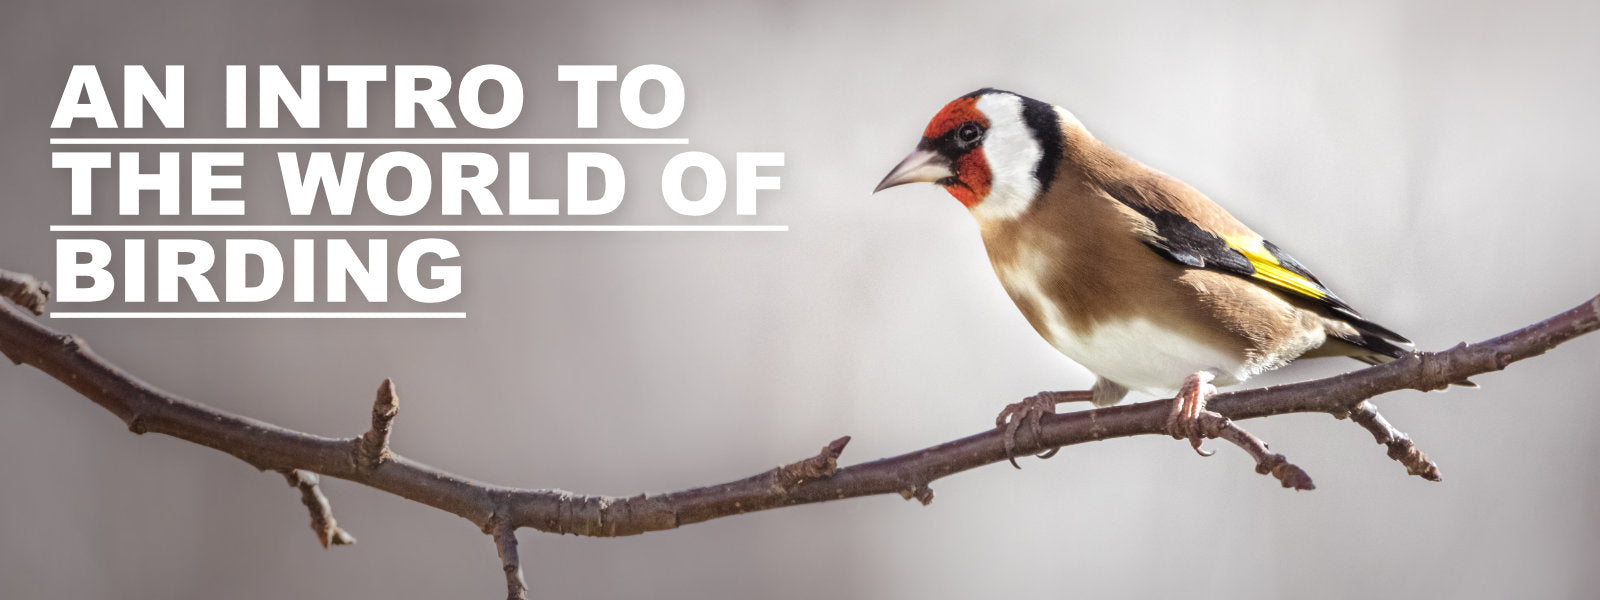 An Introduction to the World of Birding